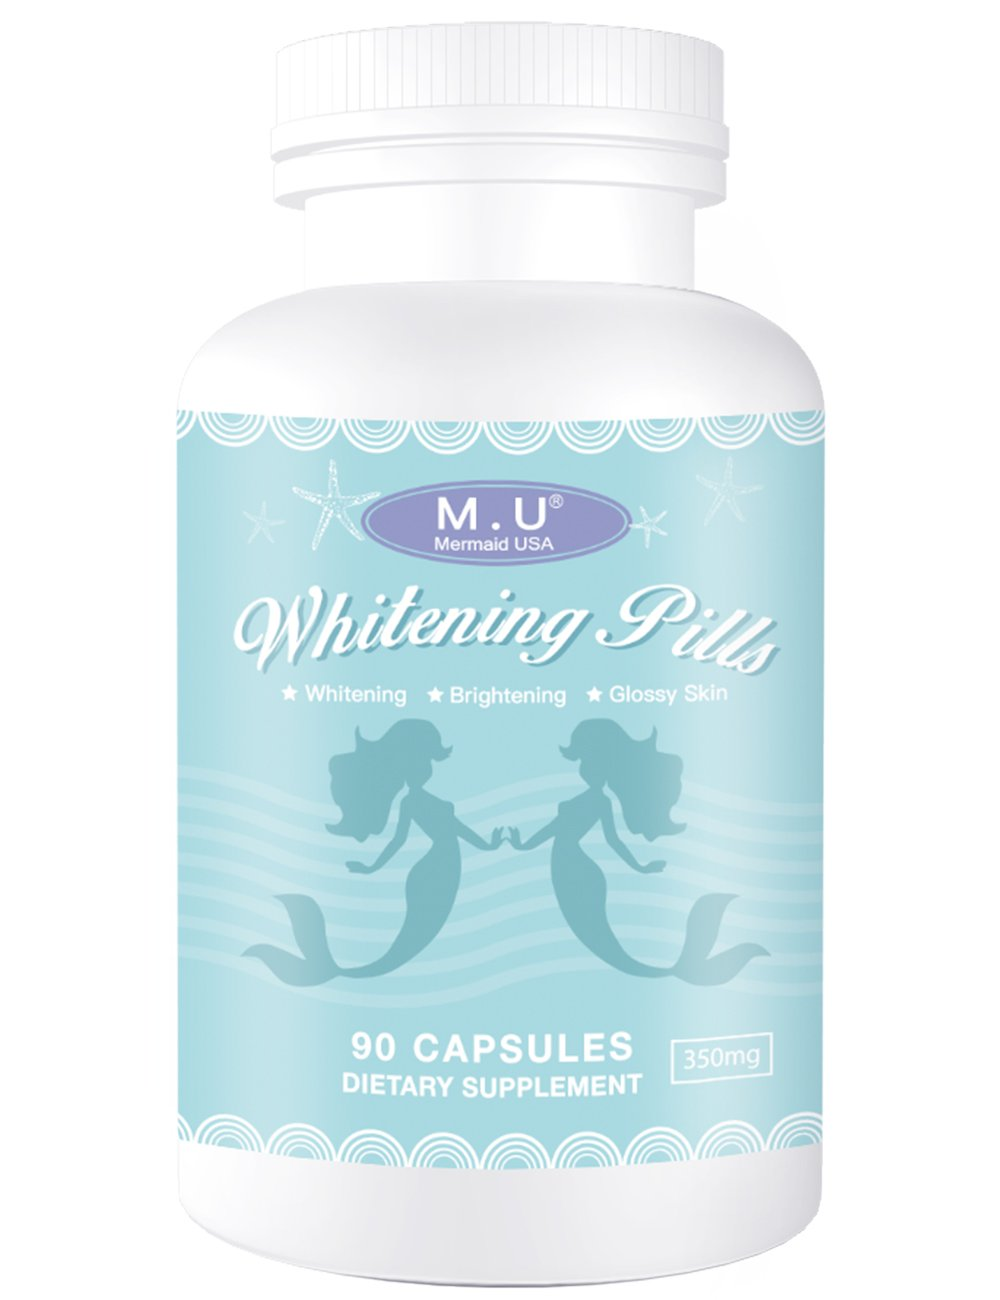 M.U Mermaid USA Whitening Pills for Skin 3 Times Effect of glutathione, Focus on Glowing brightening Smoothy Skin Support Dark spot Remover Acne Scar Remover by M.U (Image #1)